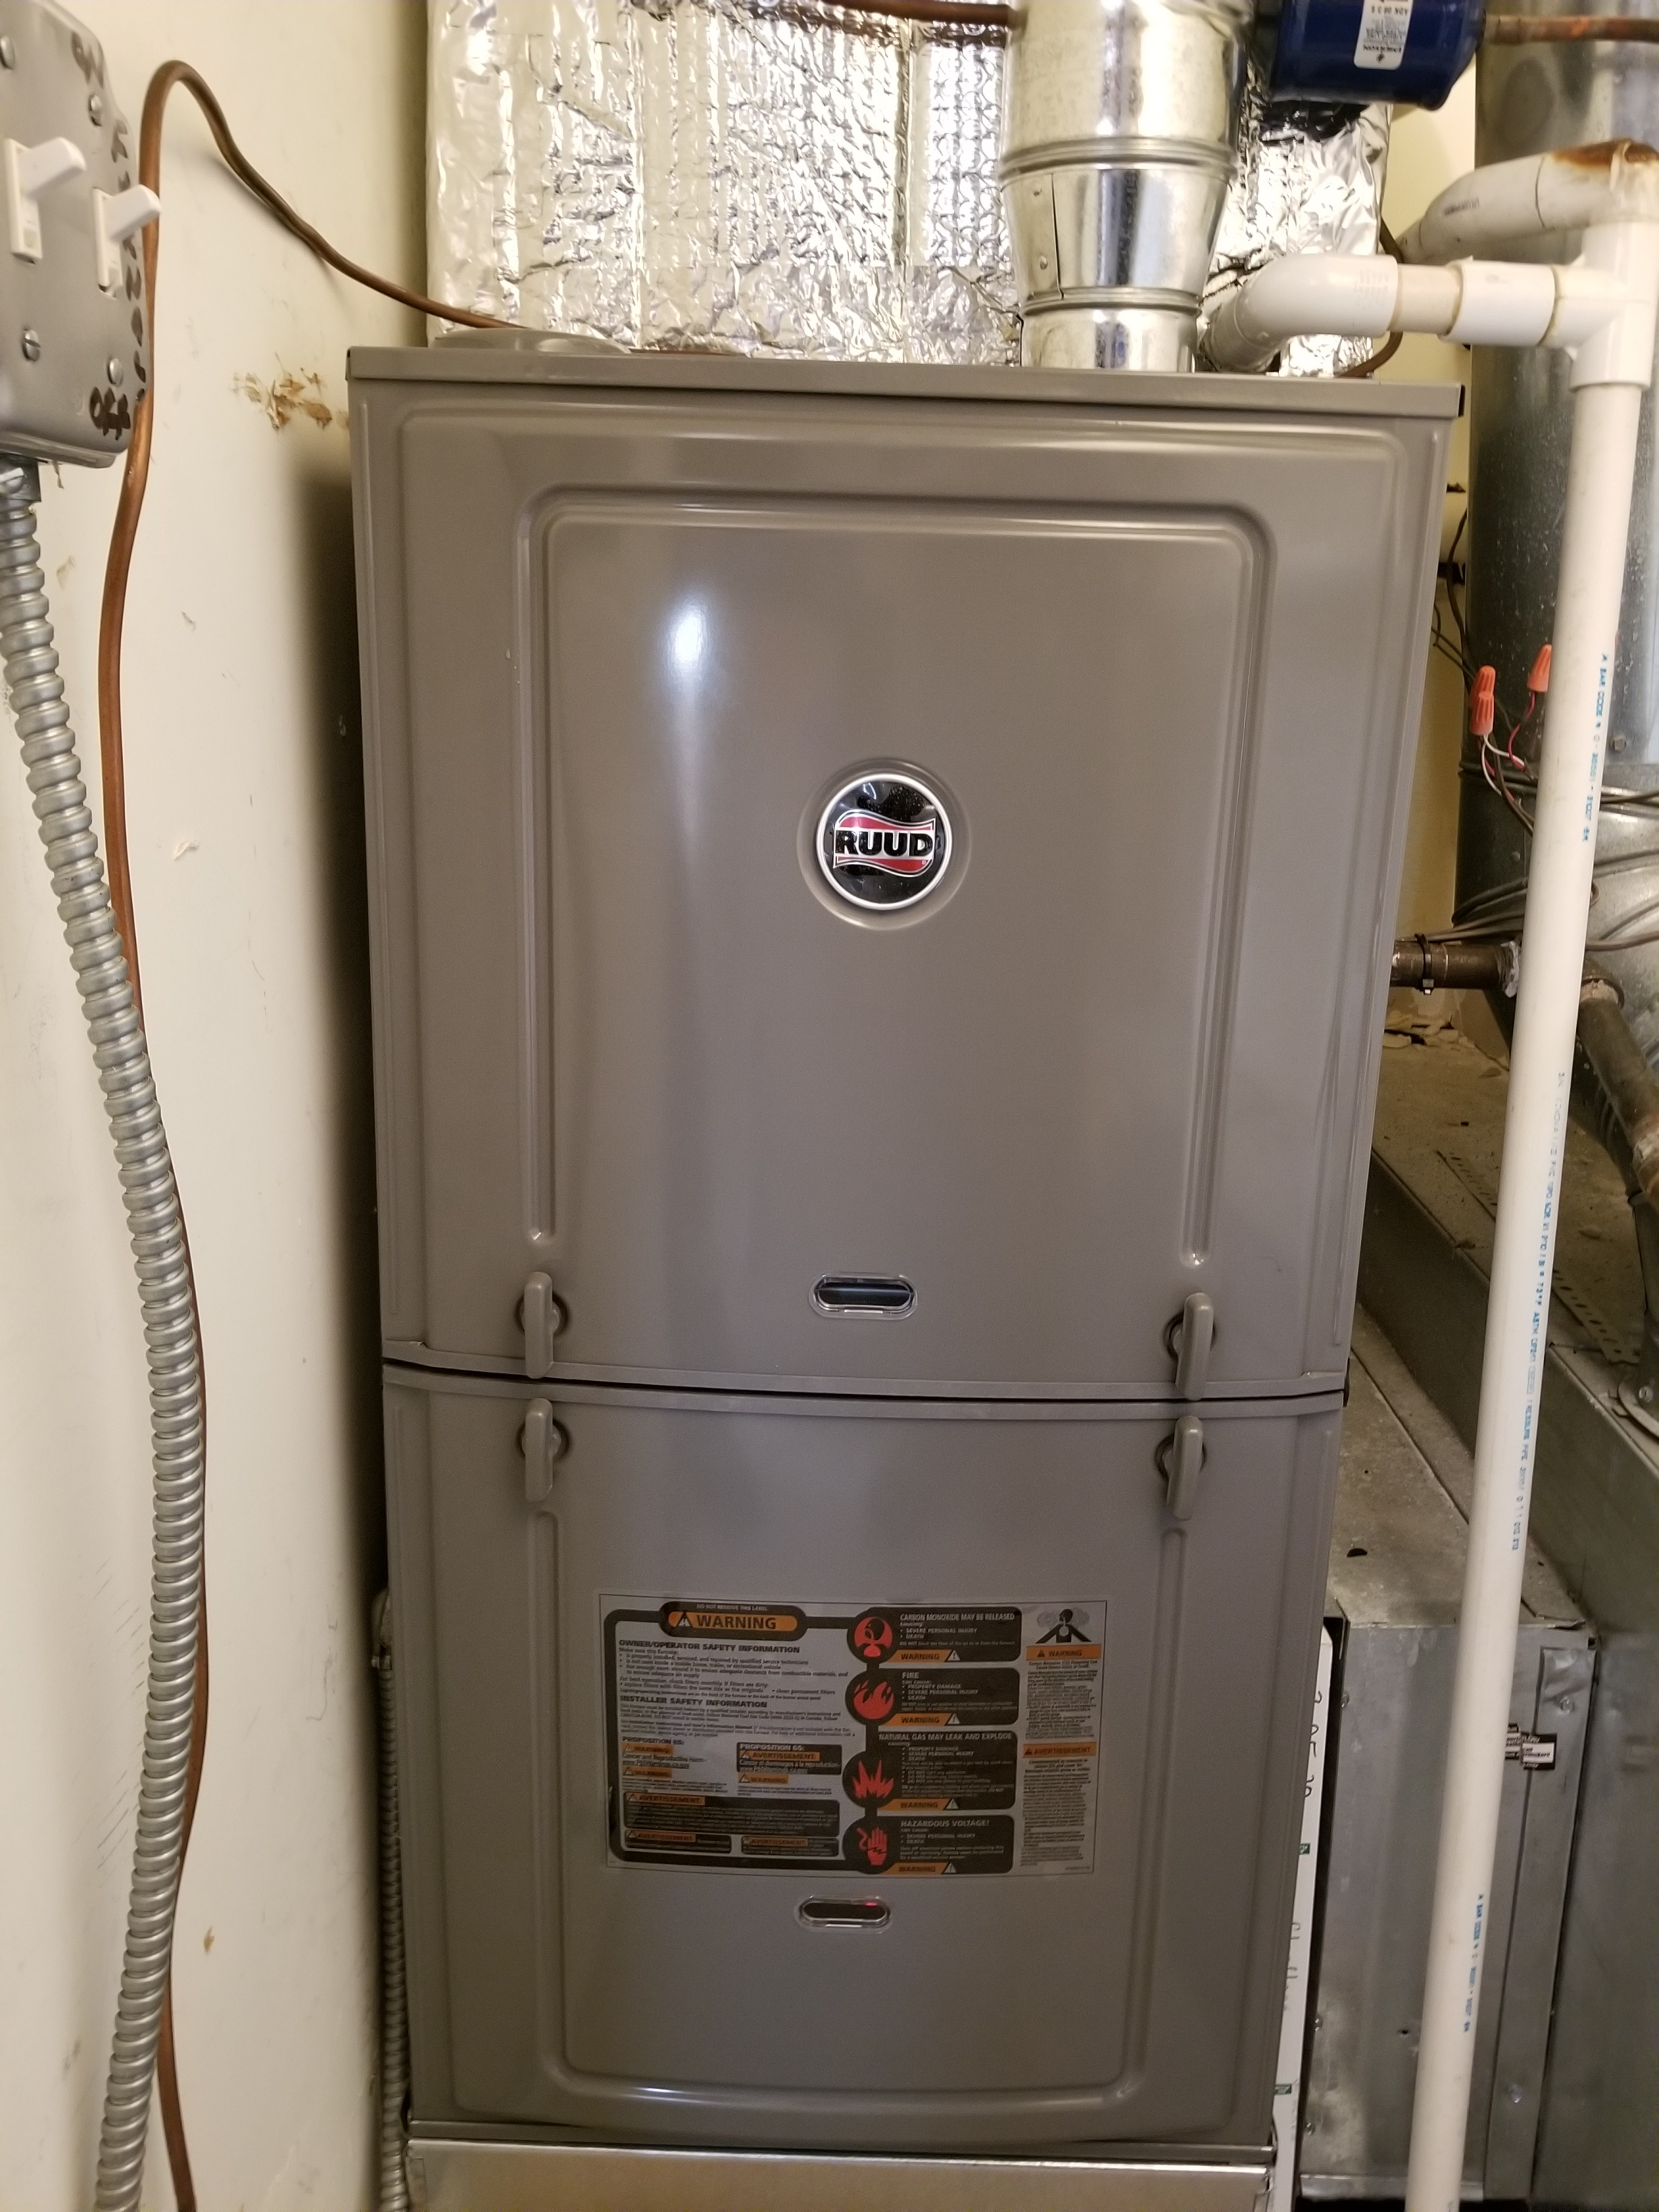 Removed an old worm out furnace and replaced it with a new efficient Ruud furnace.